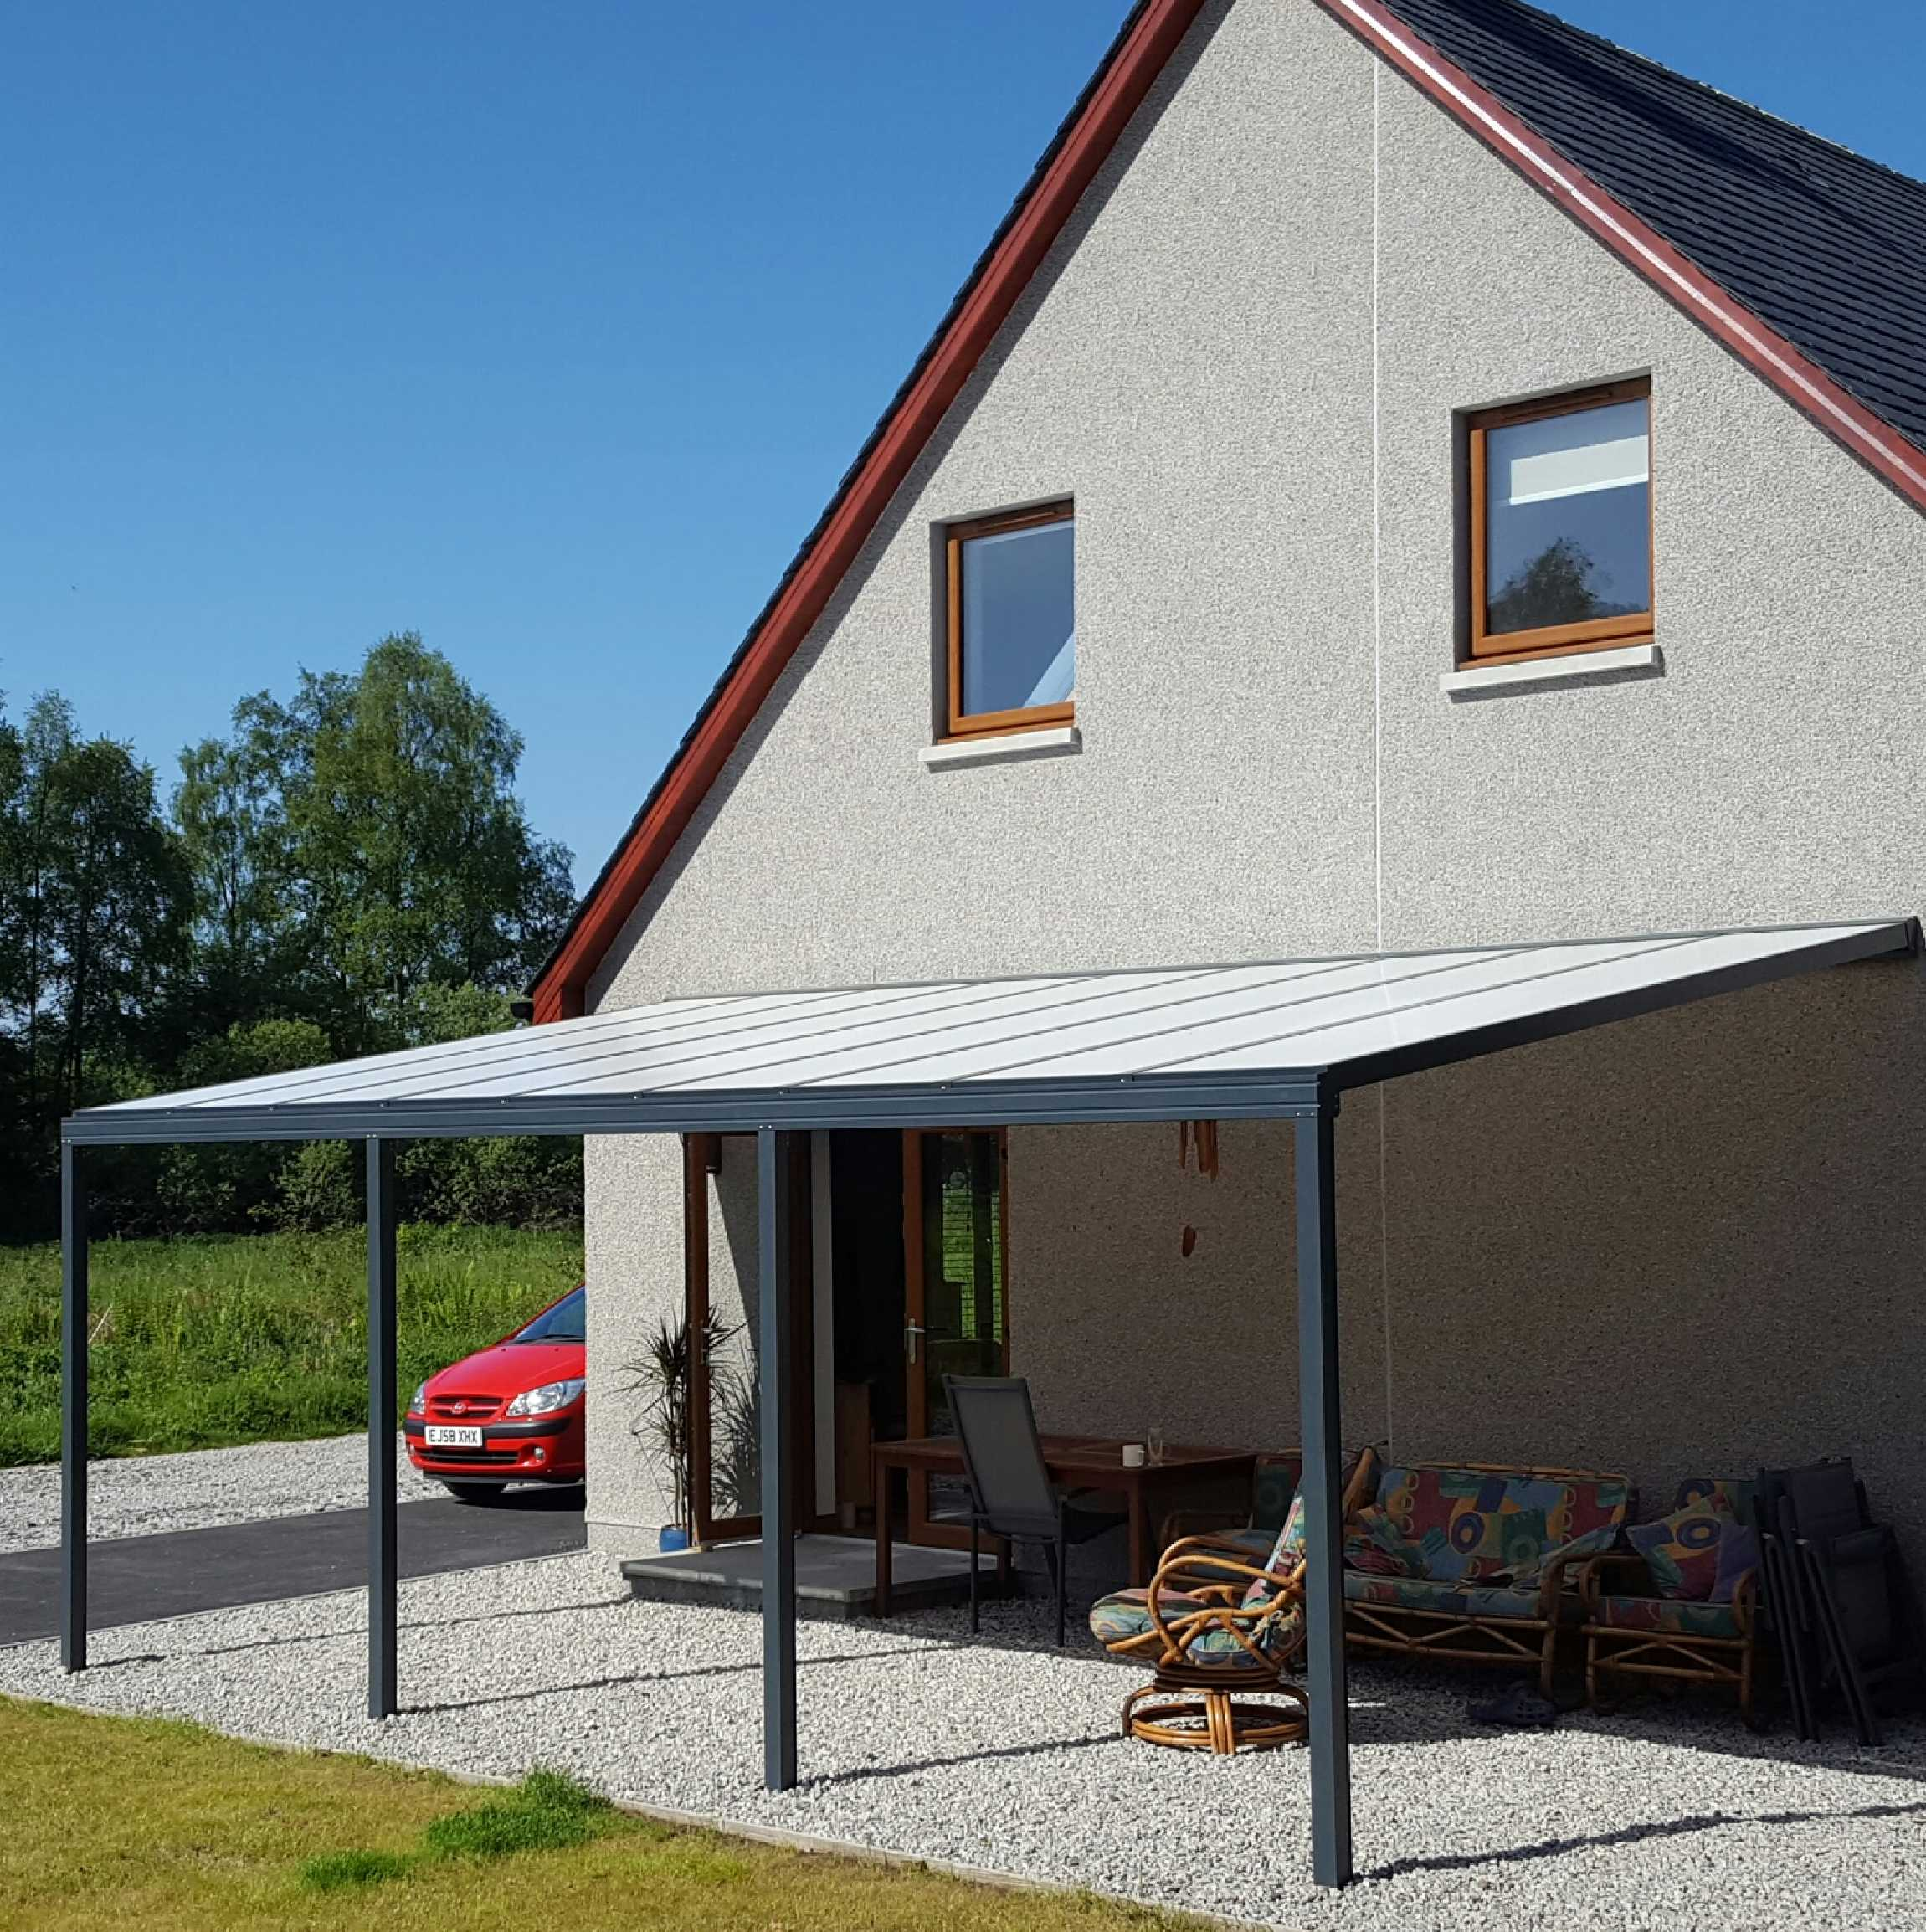 Great selection of Omega Smart Lean-To Canopy, Anthracite Grey, 16mm Polycarbonate Glazing - 5.2m (W) x 2.5m (P), (3) Supporting Posts